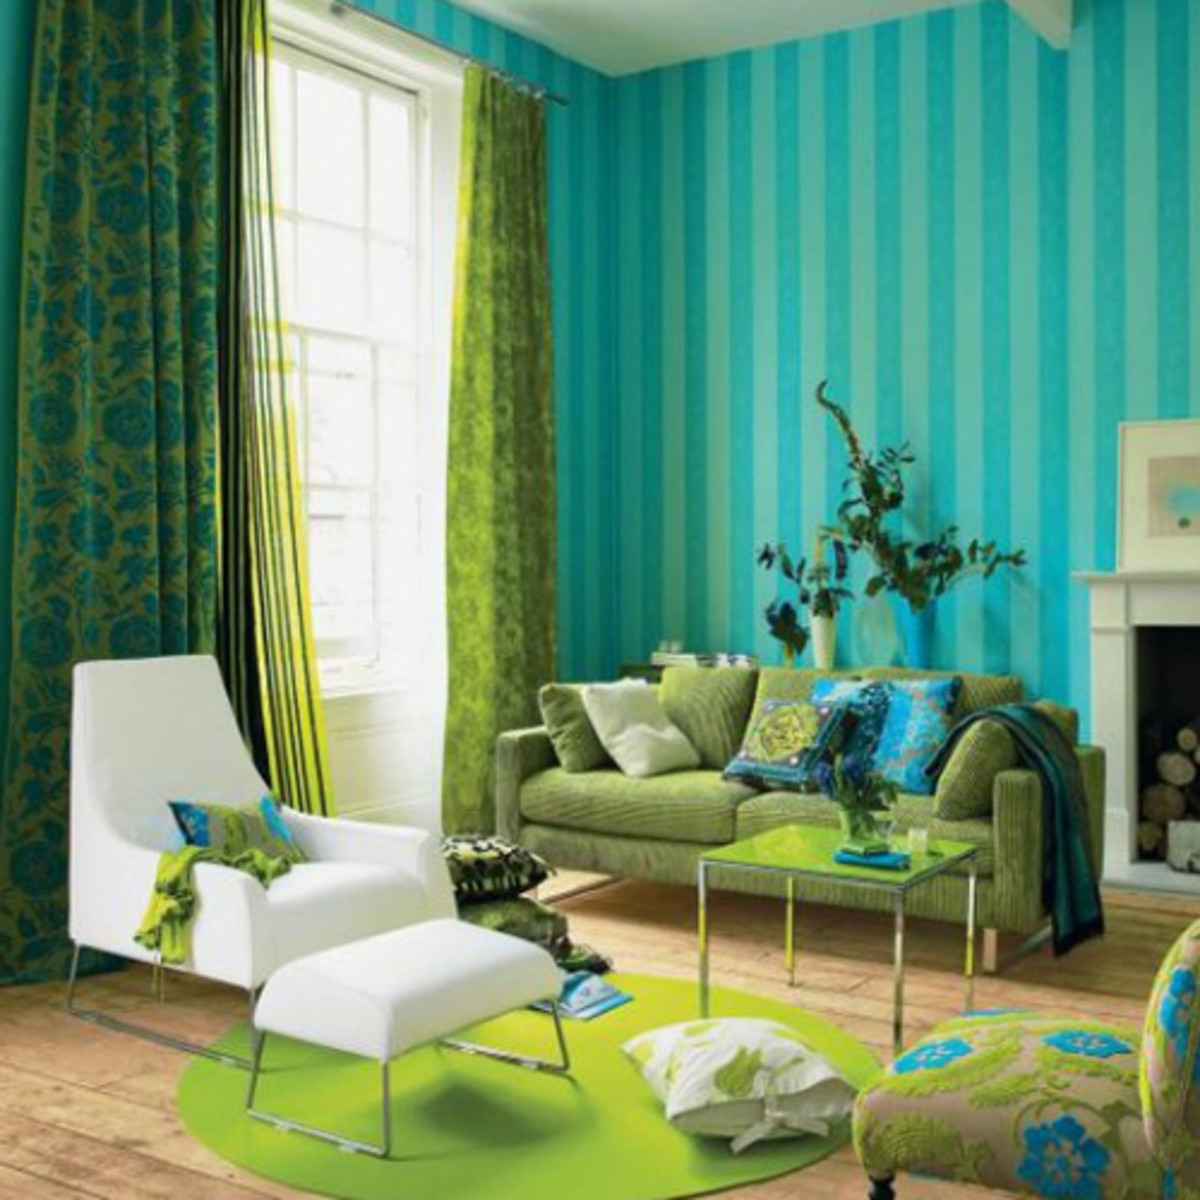 Use blended colors on walls and decor.